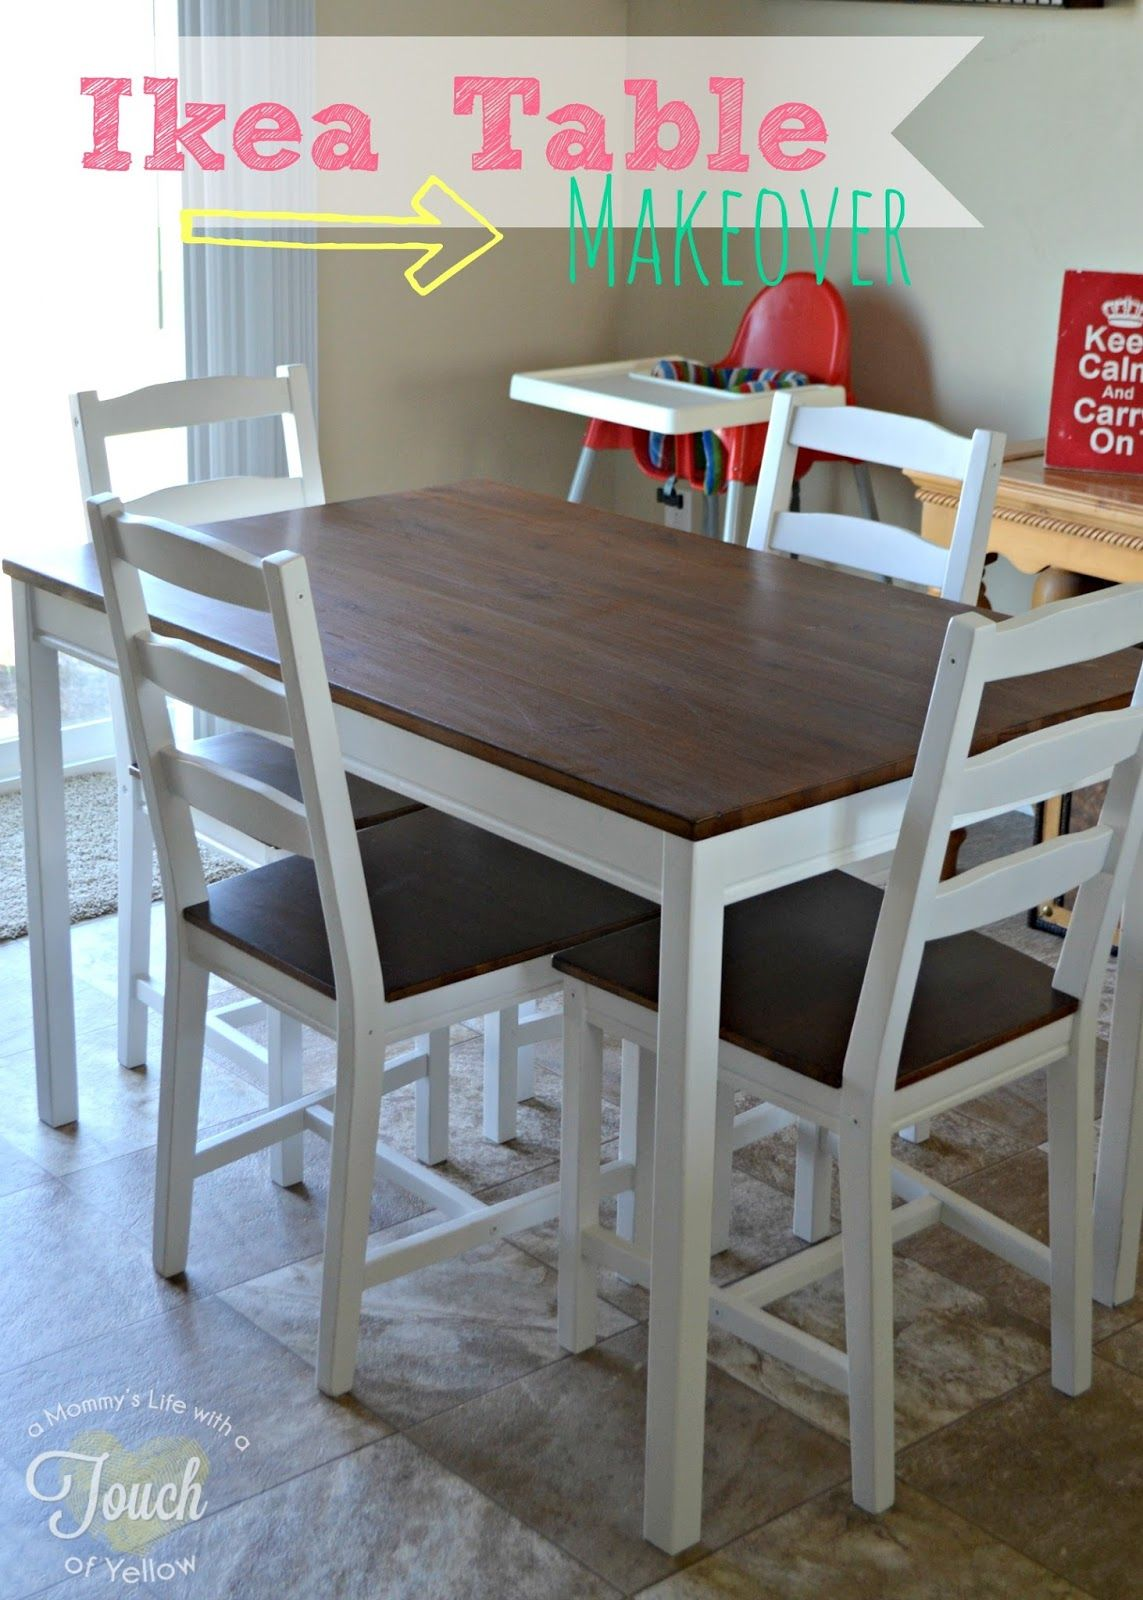 a mommy's lifewith a touch of yellow: ikea kitchen table makeover